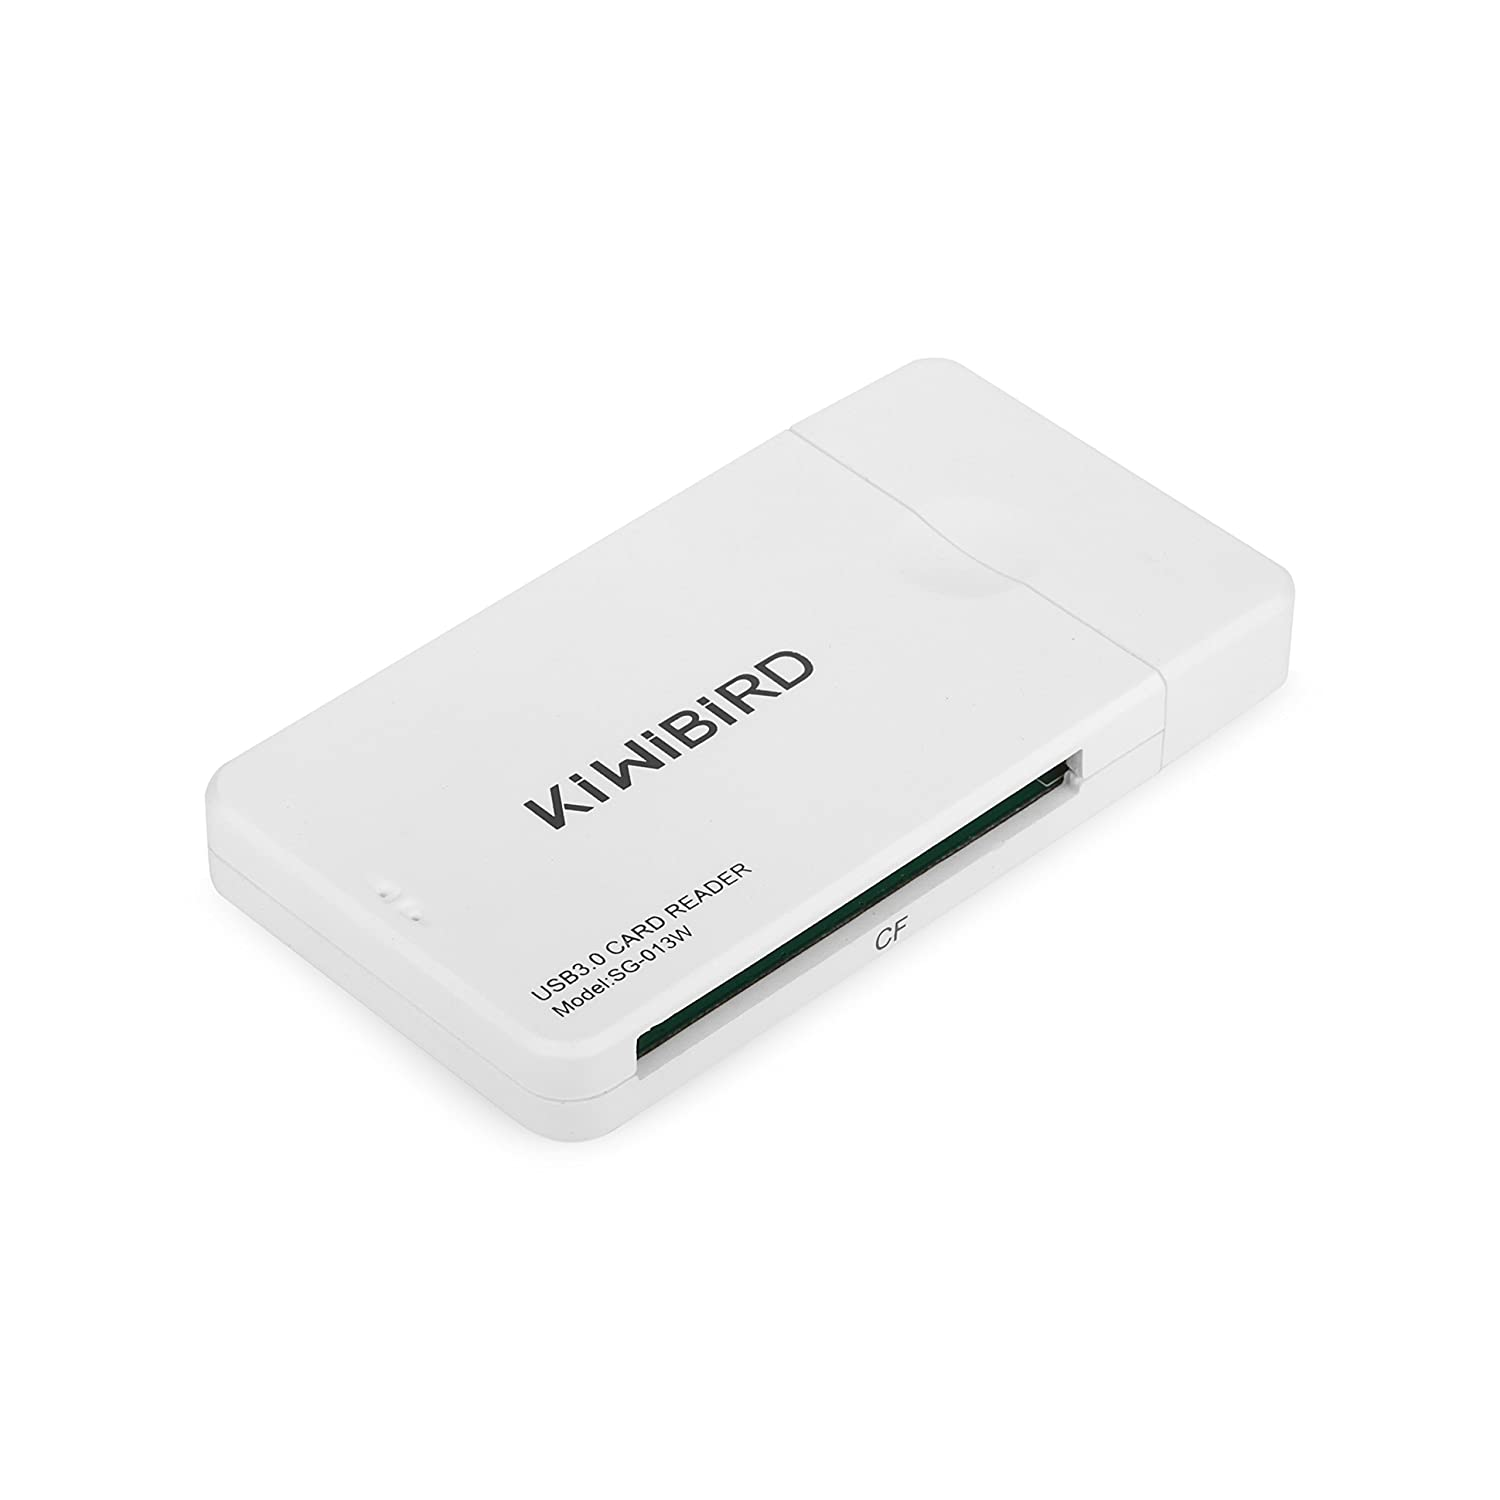 Kiwibird Usb 30 31 Gen 1 Lettore Di Schede Super Speed 9 In Card Reader Otg Micro With Sd And Qualitas Per Cf Udma Sdxc Mmc Rs Sdhc